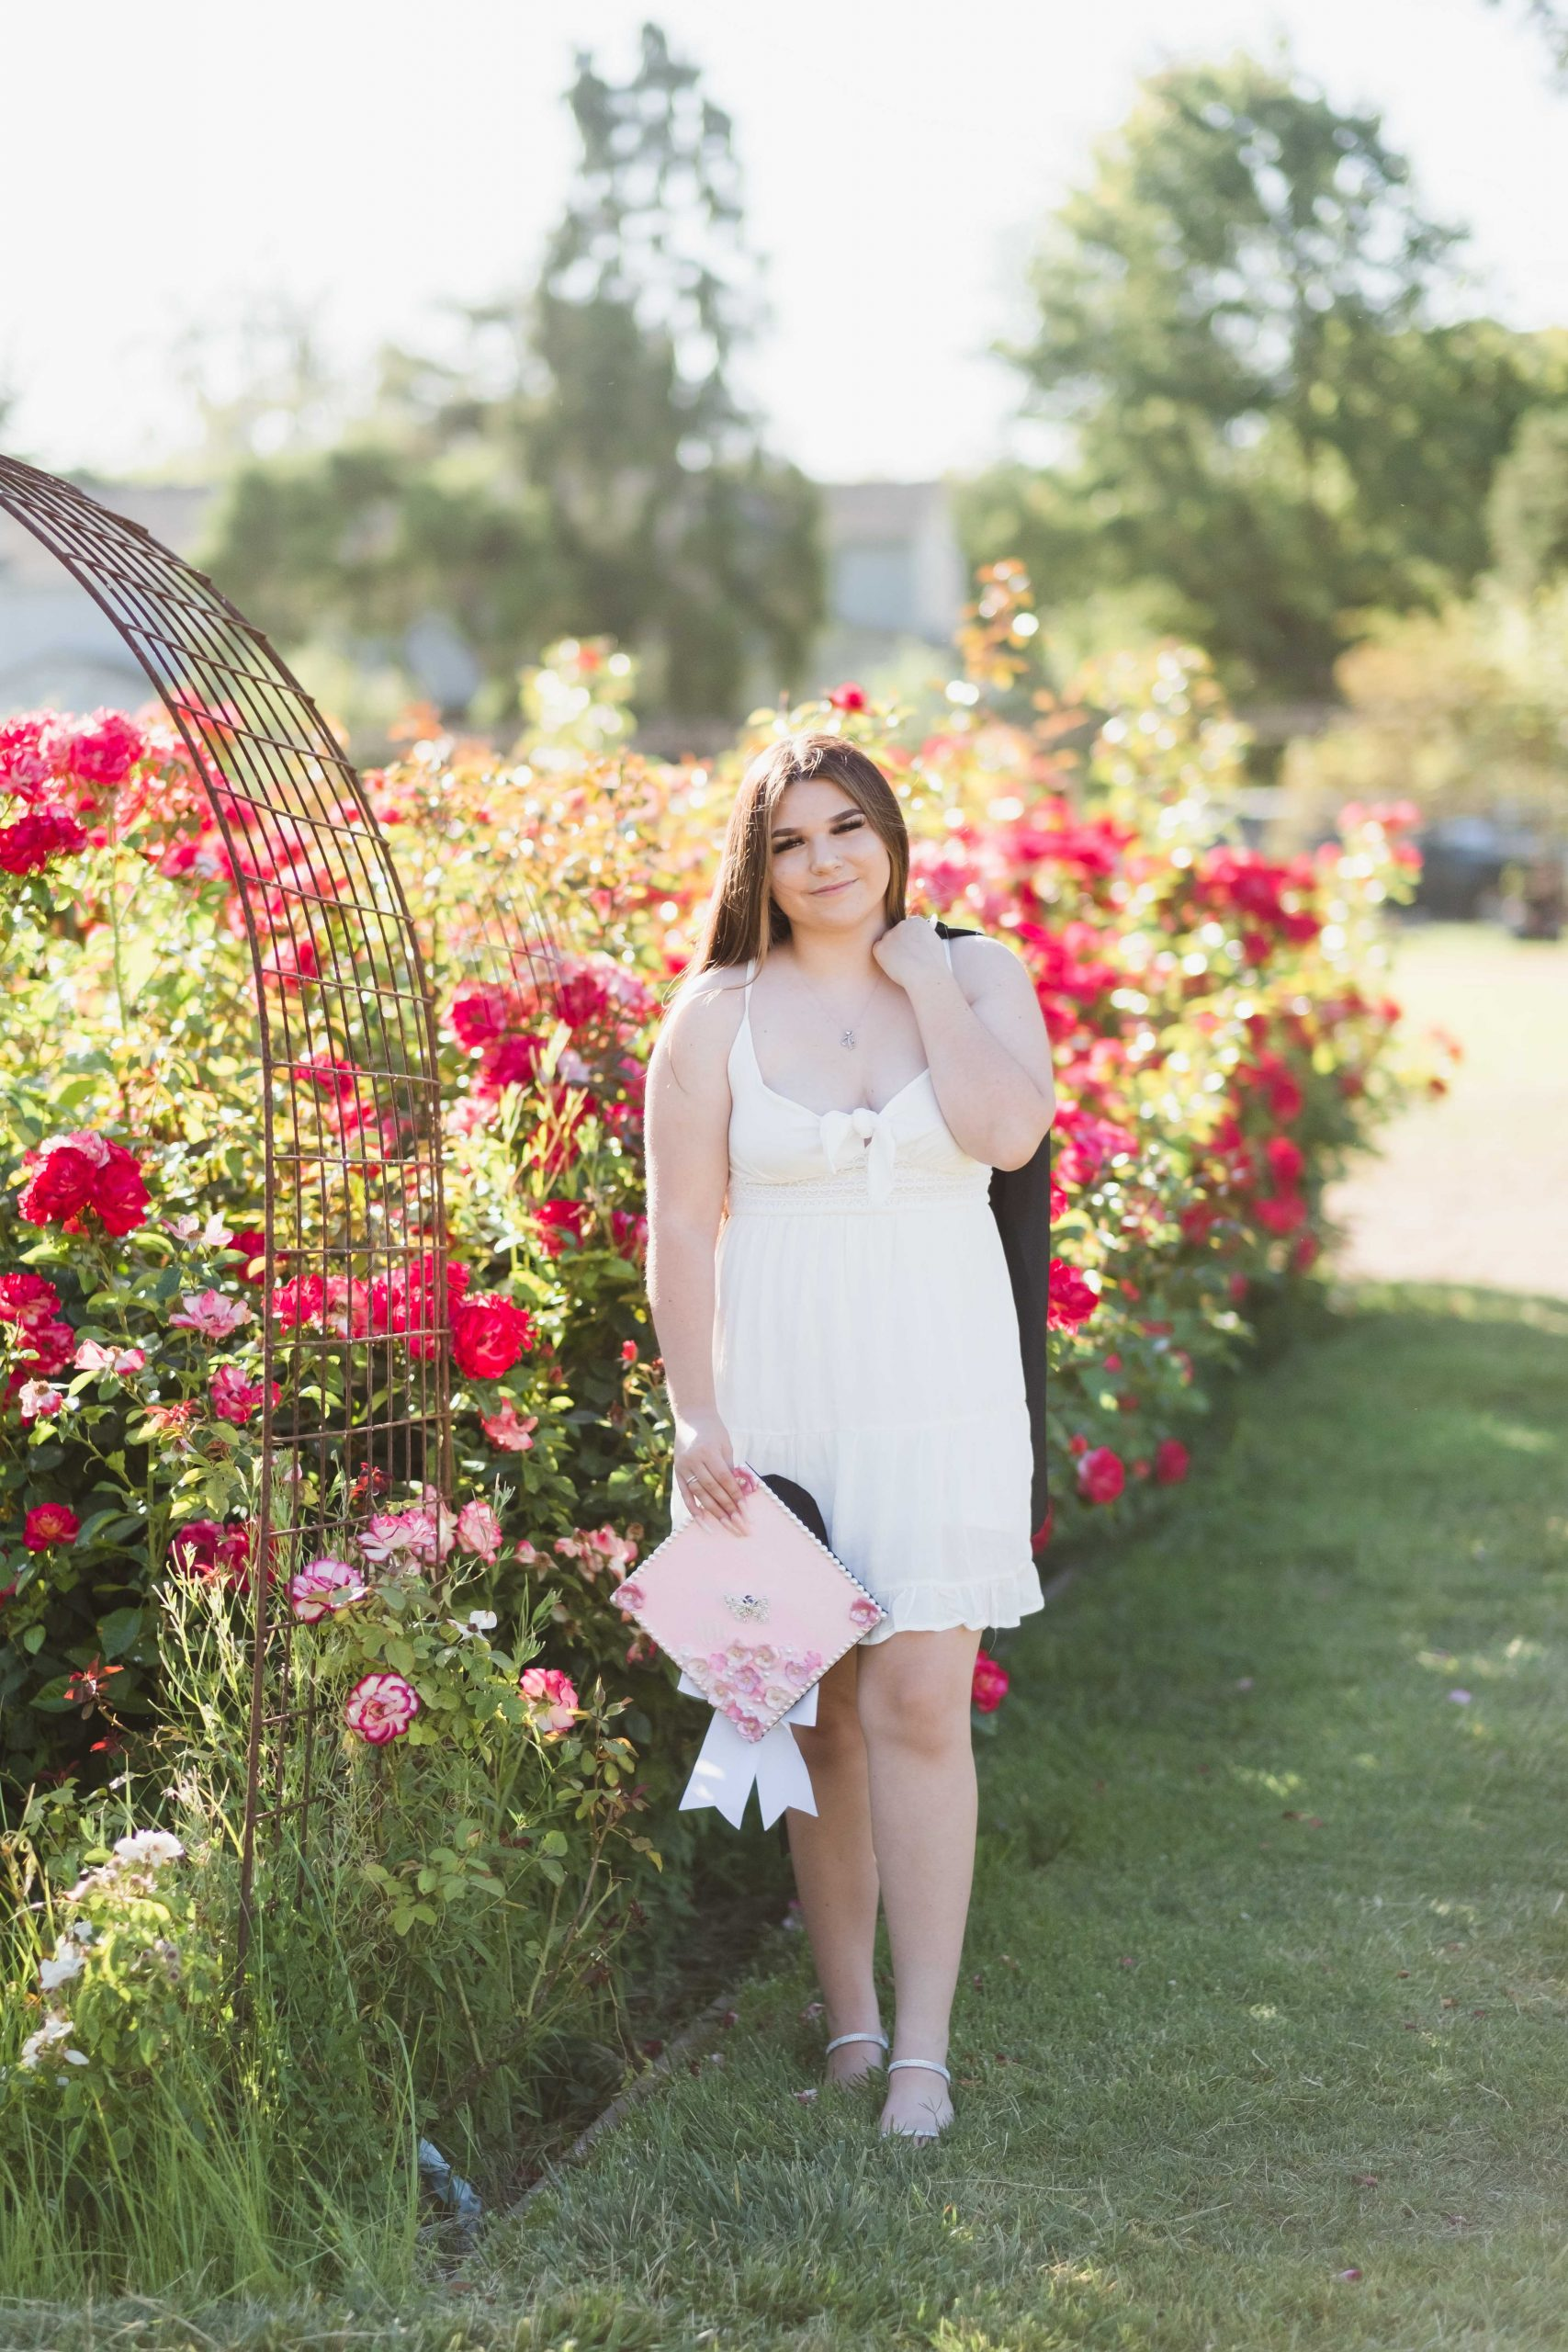 high school graduate in white dress in front of a row of lush red roses